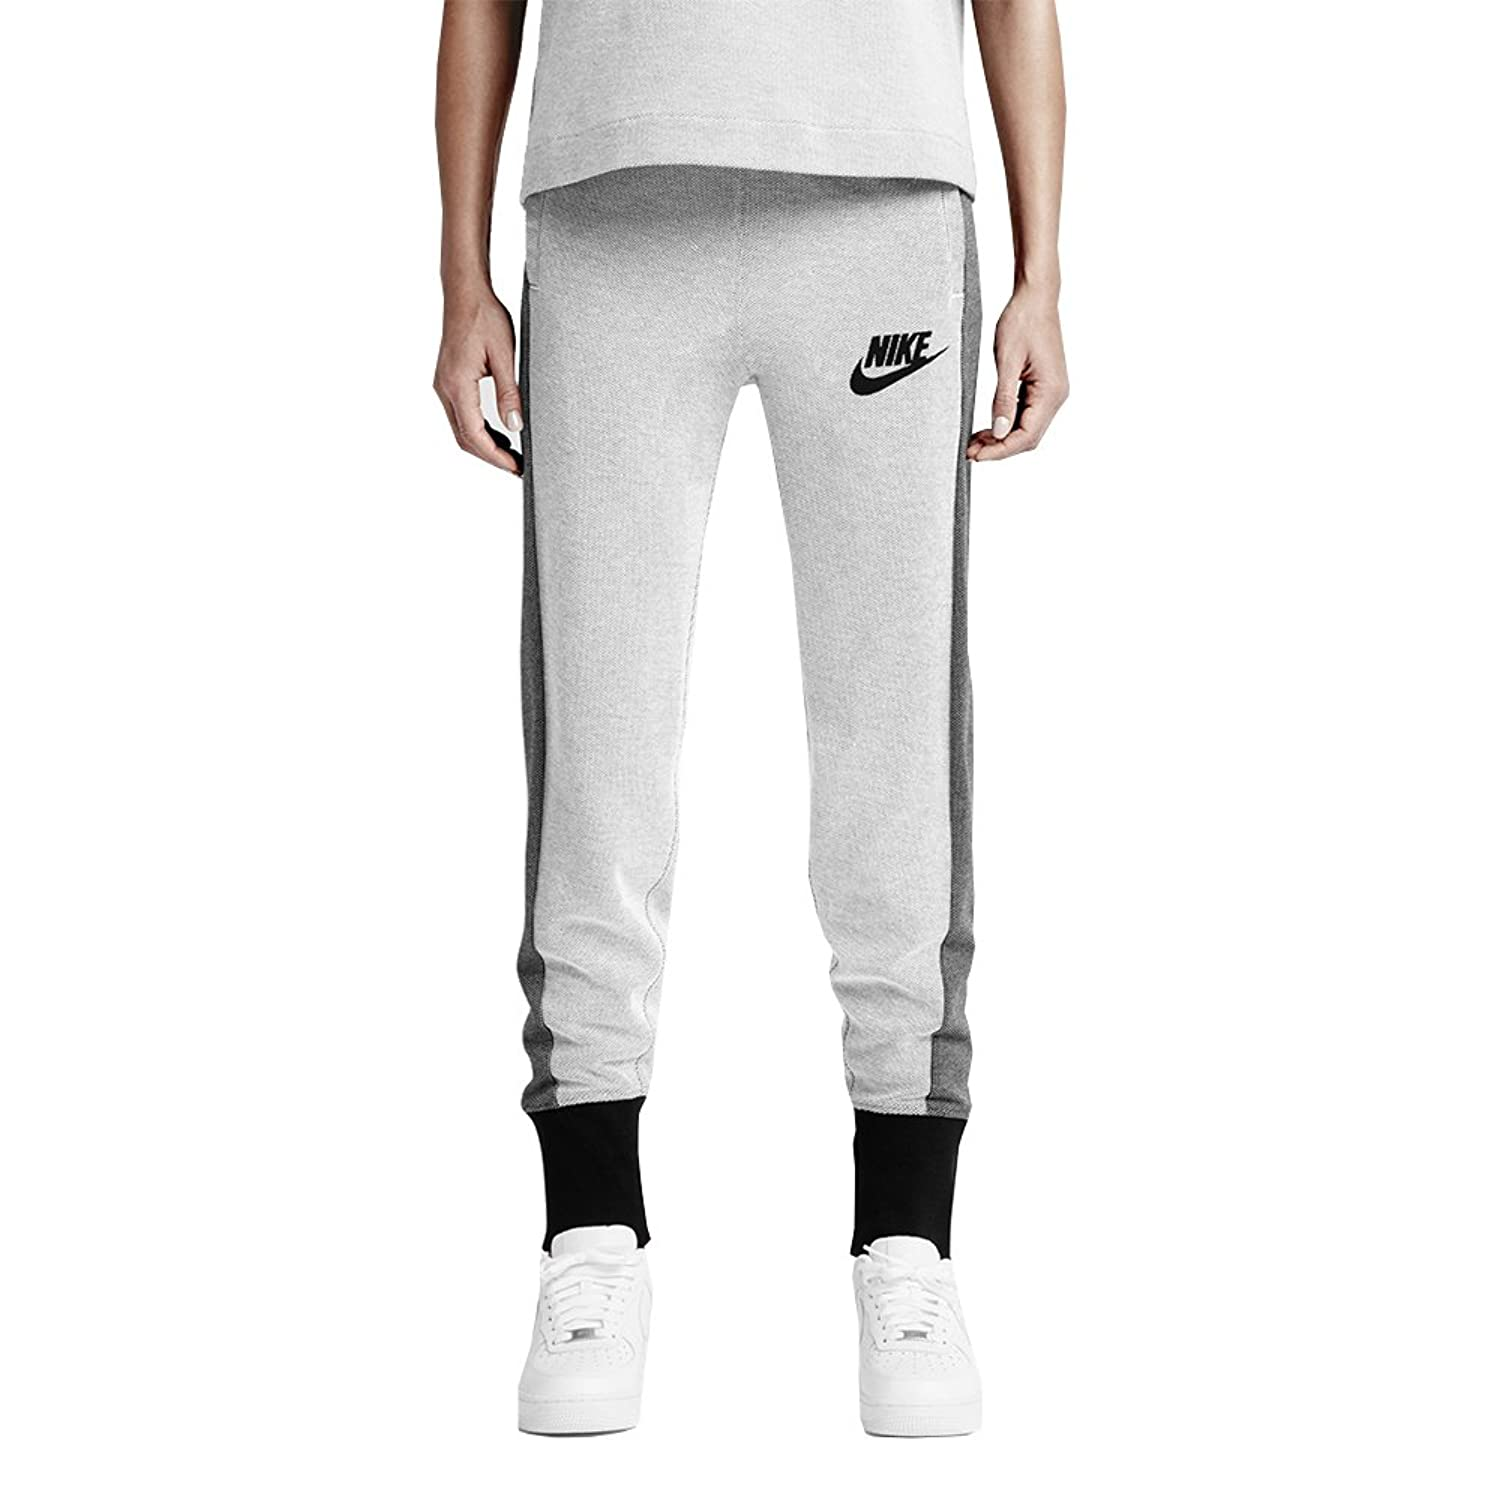 Nike RALLY Plus pant-jogger Damen Hose